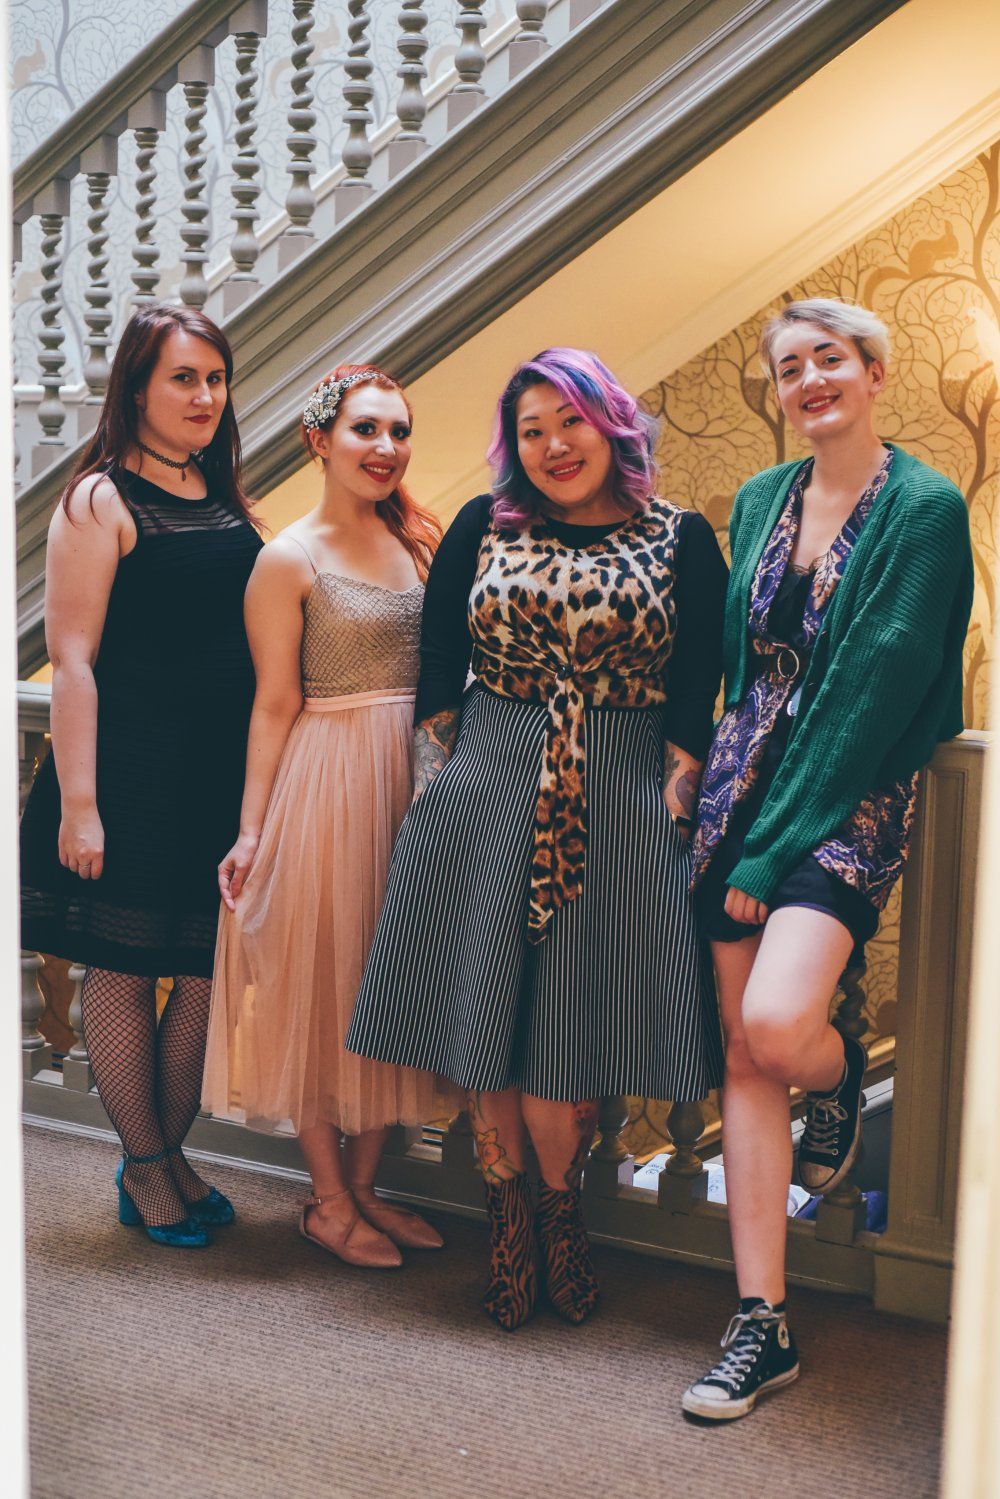 Edinburgh bloggers Mo-adore, Twenty-Something City, Lucie Dumpling and Ruth MacGilp share ethical fashion tips